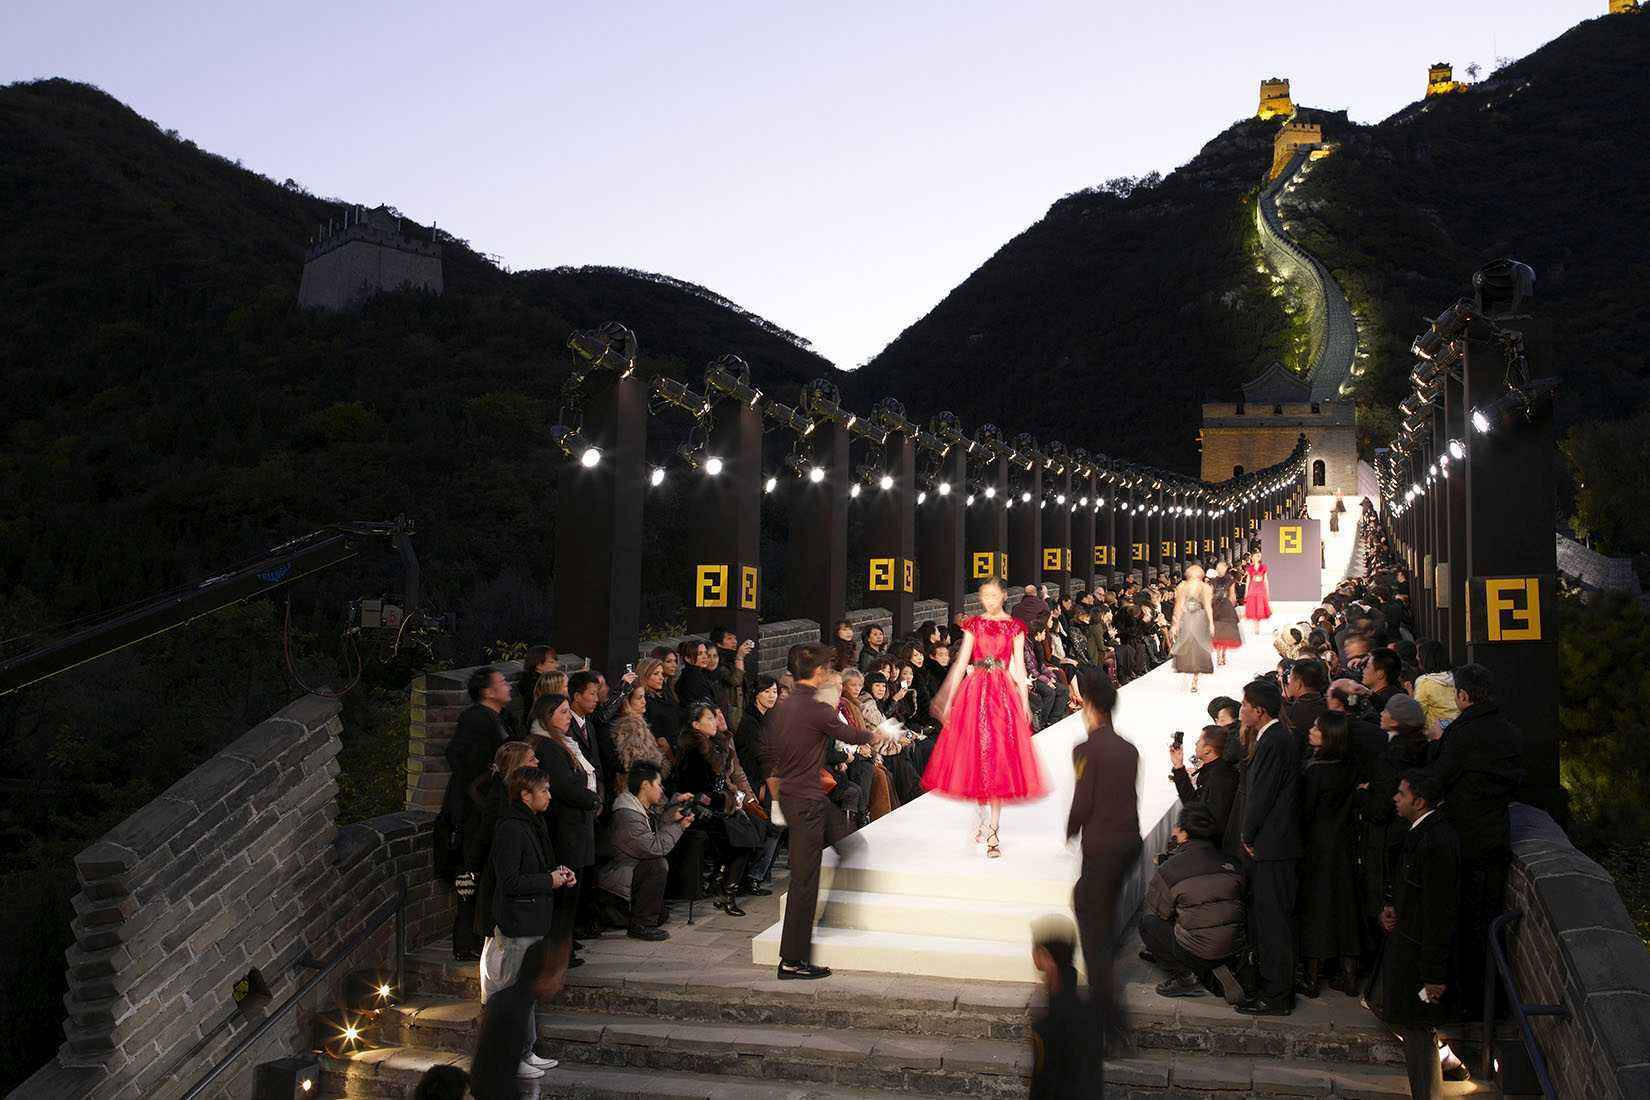 Fendi fashion show at Great Wall